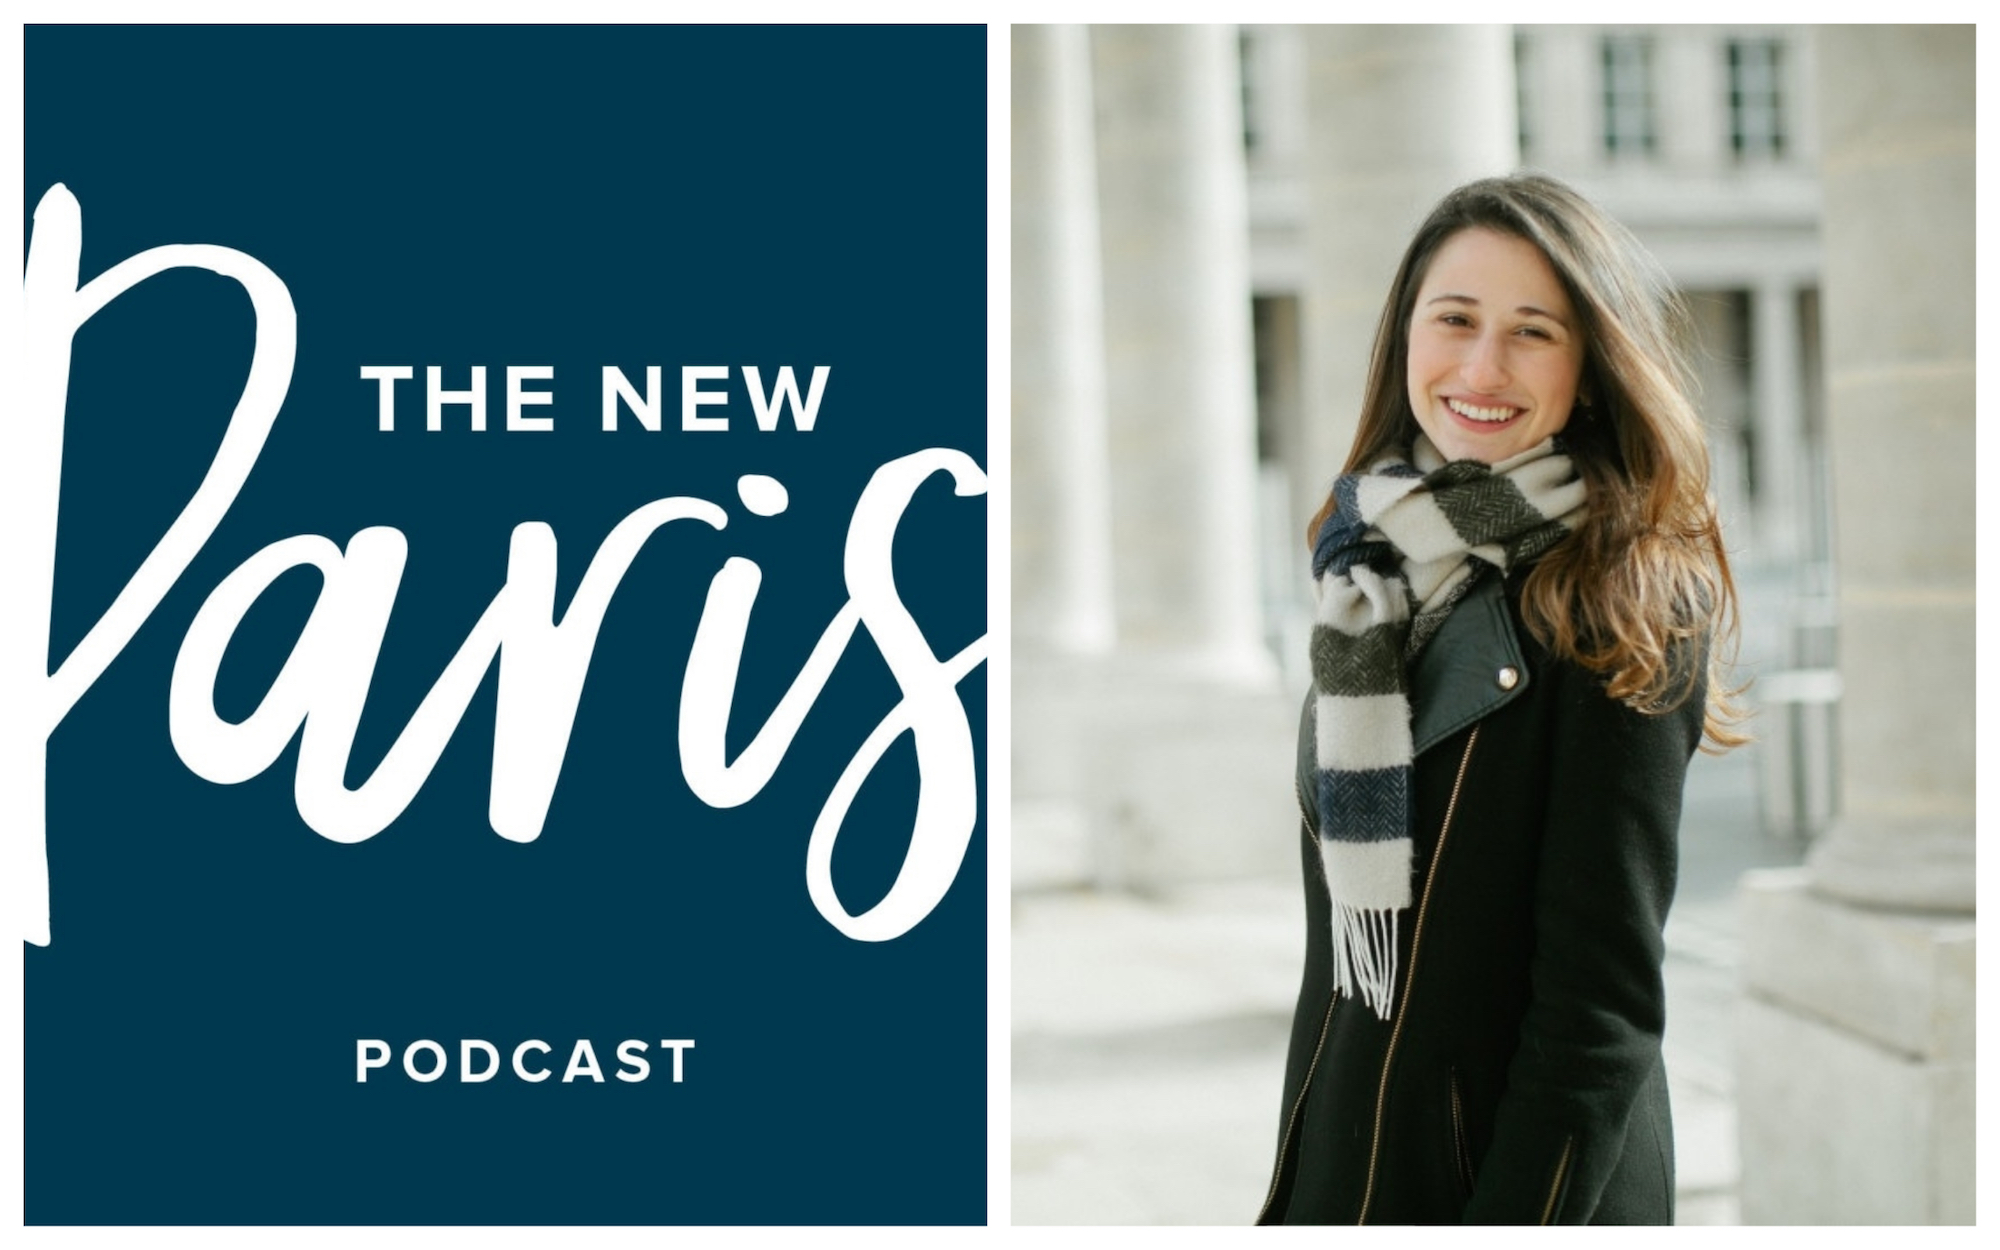 HiP Paris Blog rounds up the best Paris podcasts like Lindsey Tramuta's 'The New Paris' show about life and trends in Paris. A poster for her show (left) and a portrait of Lindsey smiling at the camera at the Jardins du Palais Royal (right).